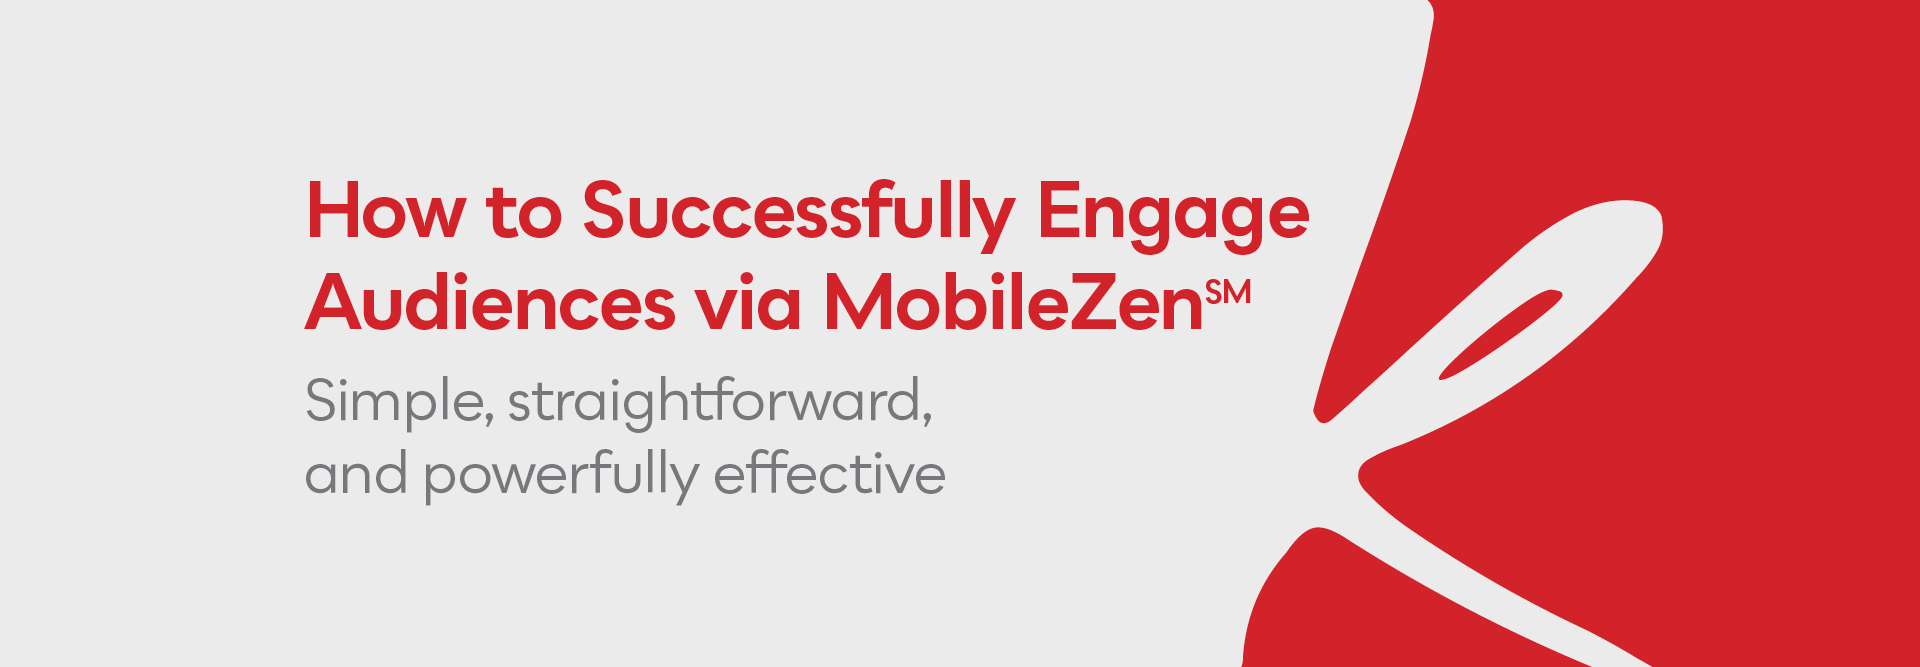 SMS-Based Marketing Outreach Success - HealthLink Dimensions